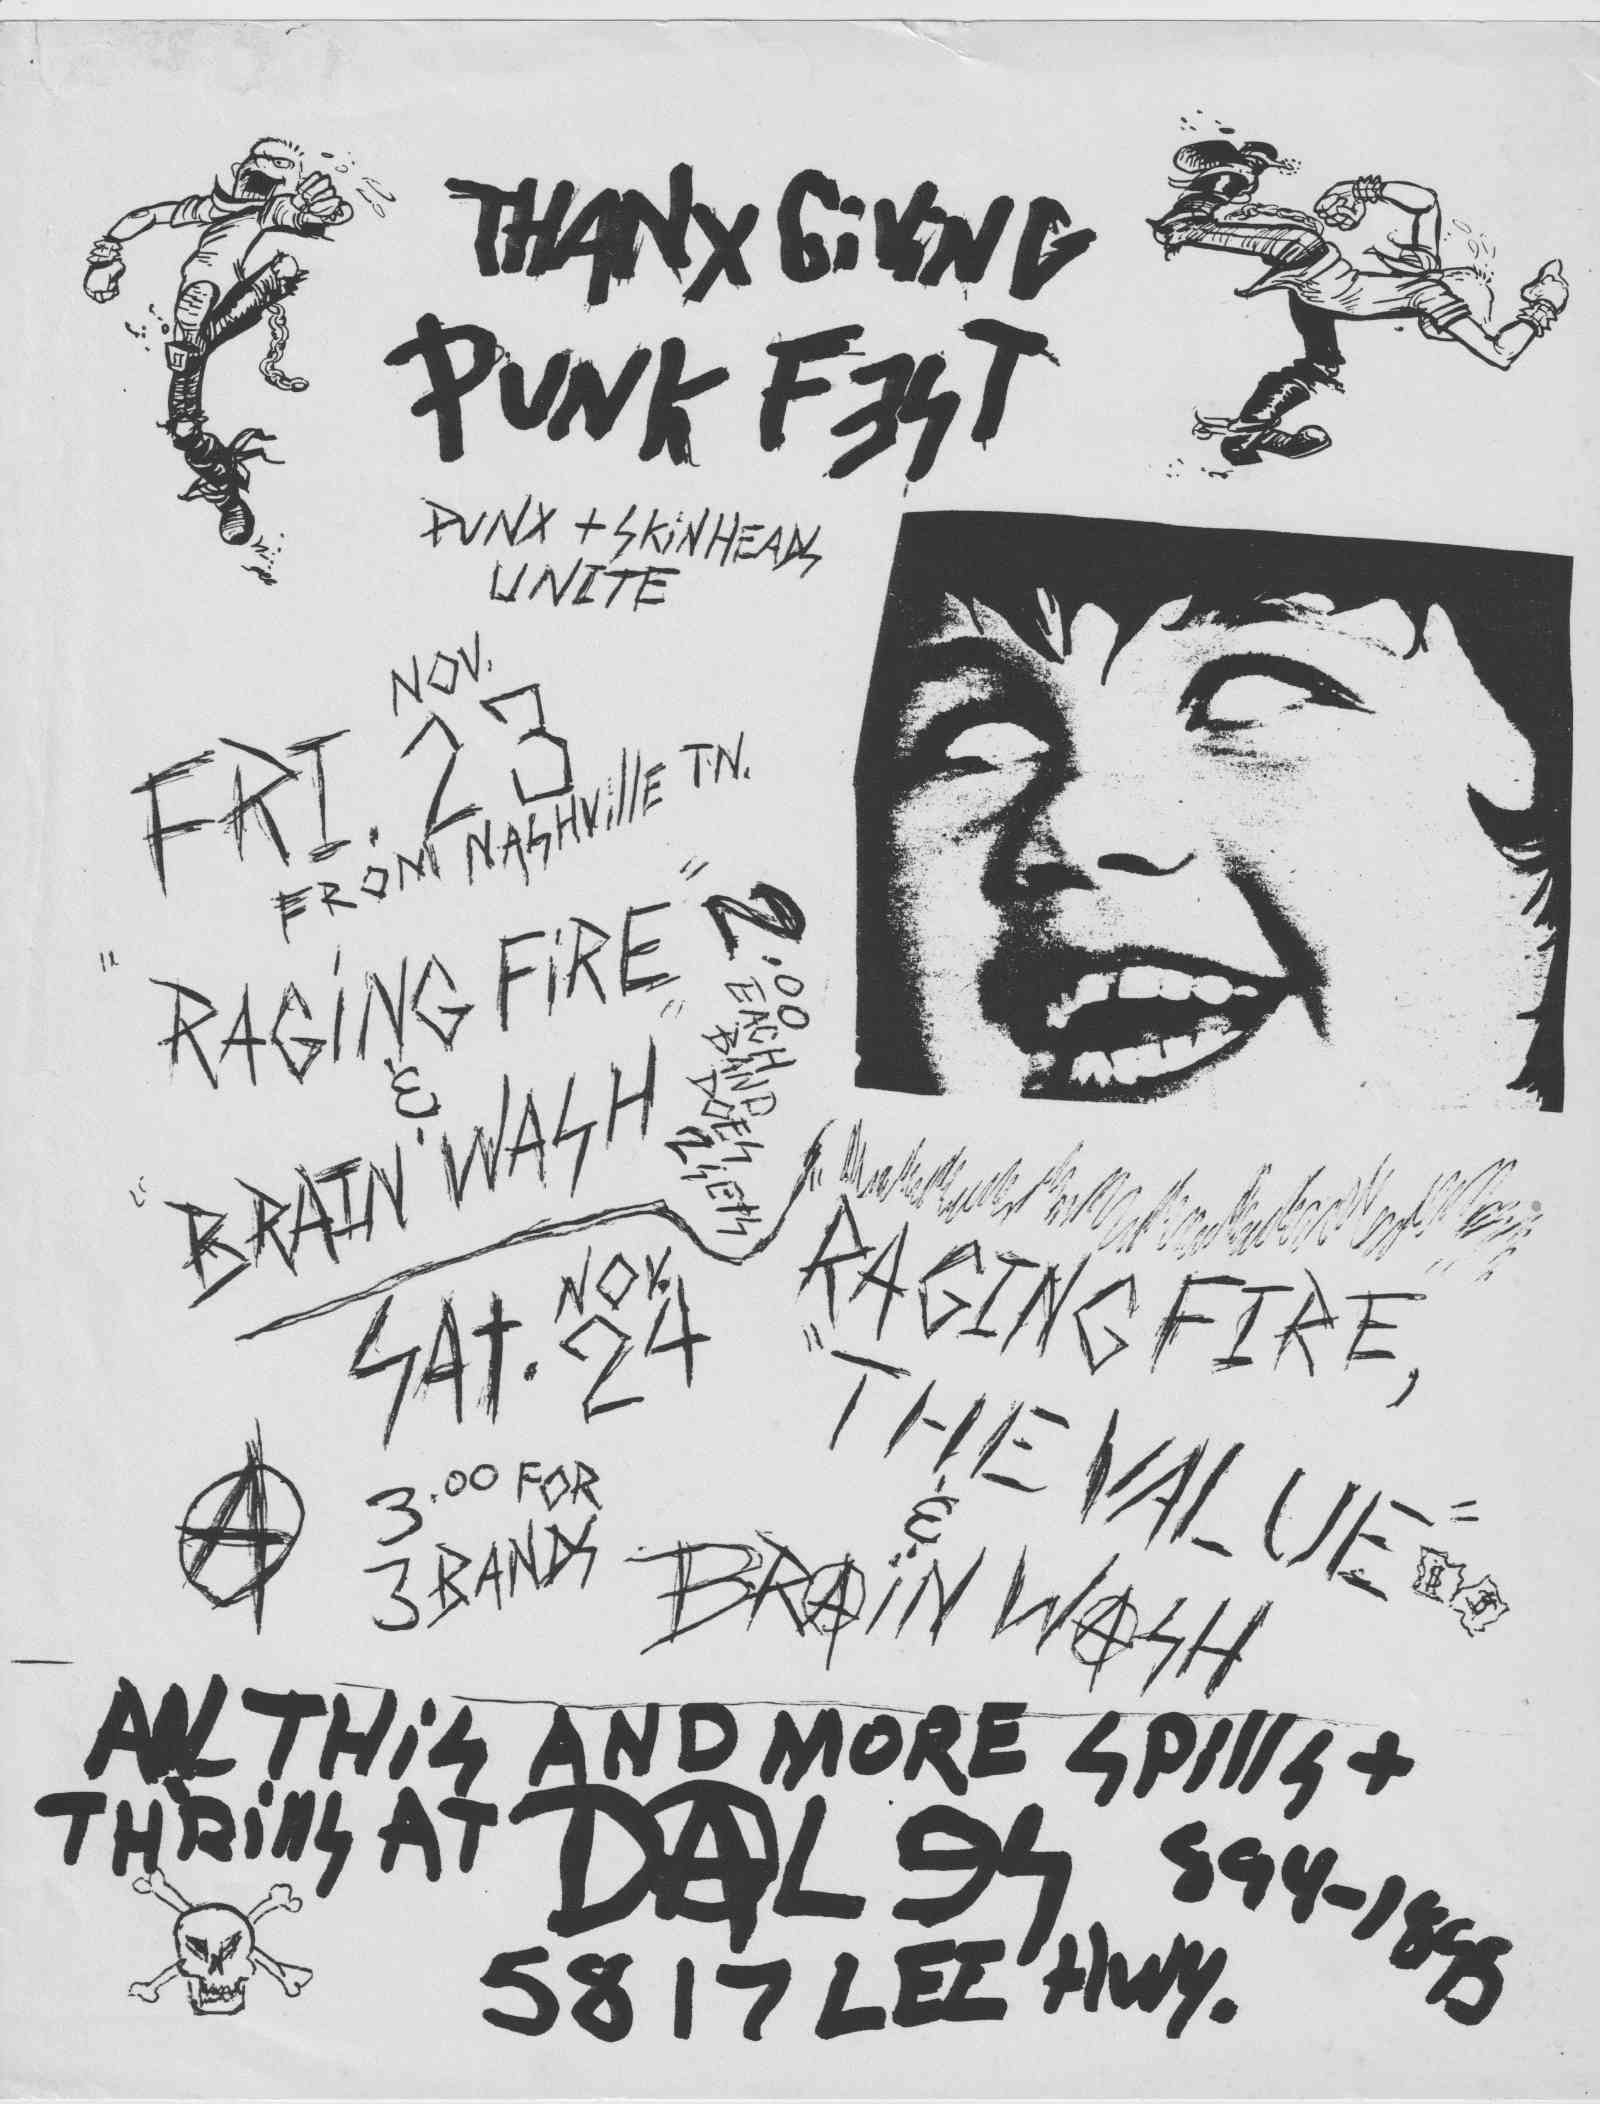 Thanksgiving Punk Fest